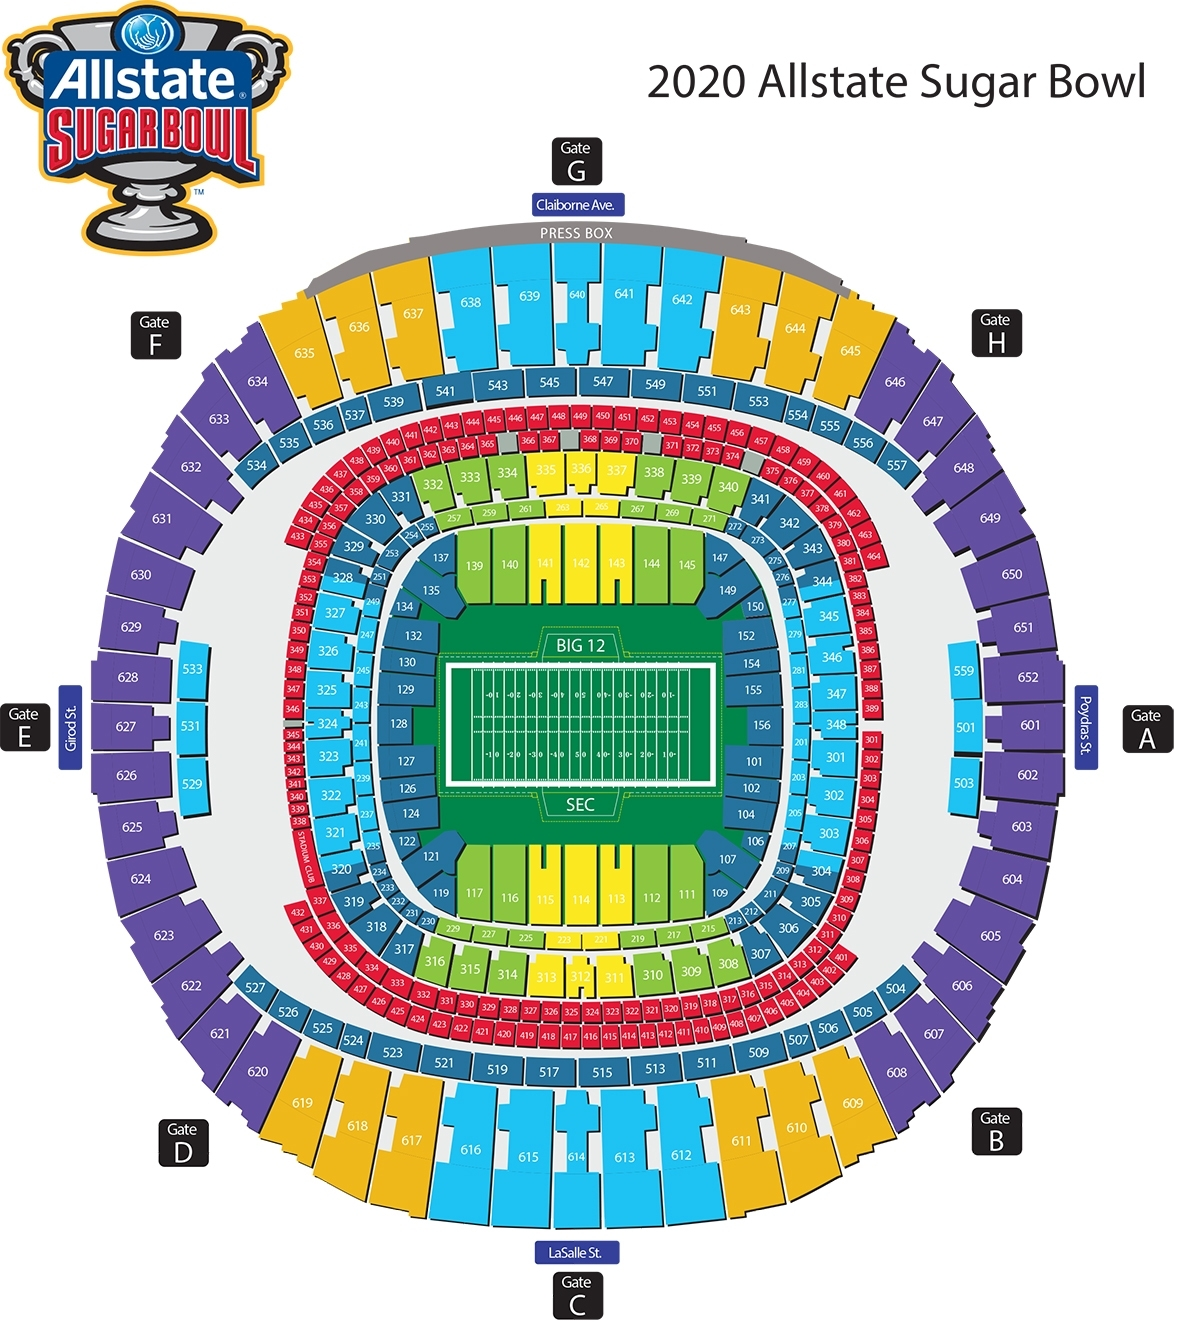 Seating Diagram - Official Site Of The Allstate Sugar Bowl regarding Super Bowl Stadium 2019 Seating Chart